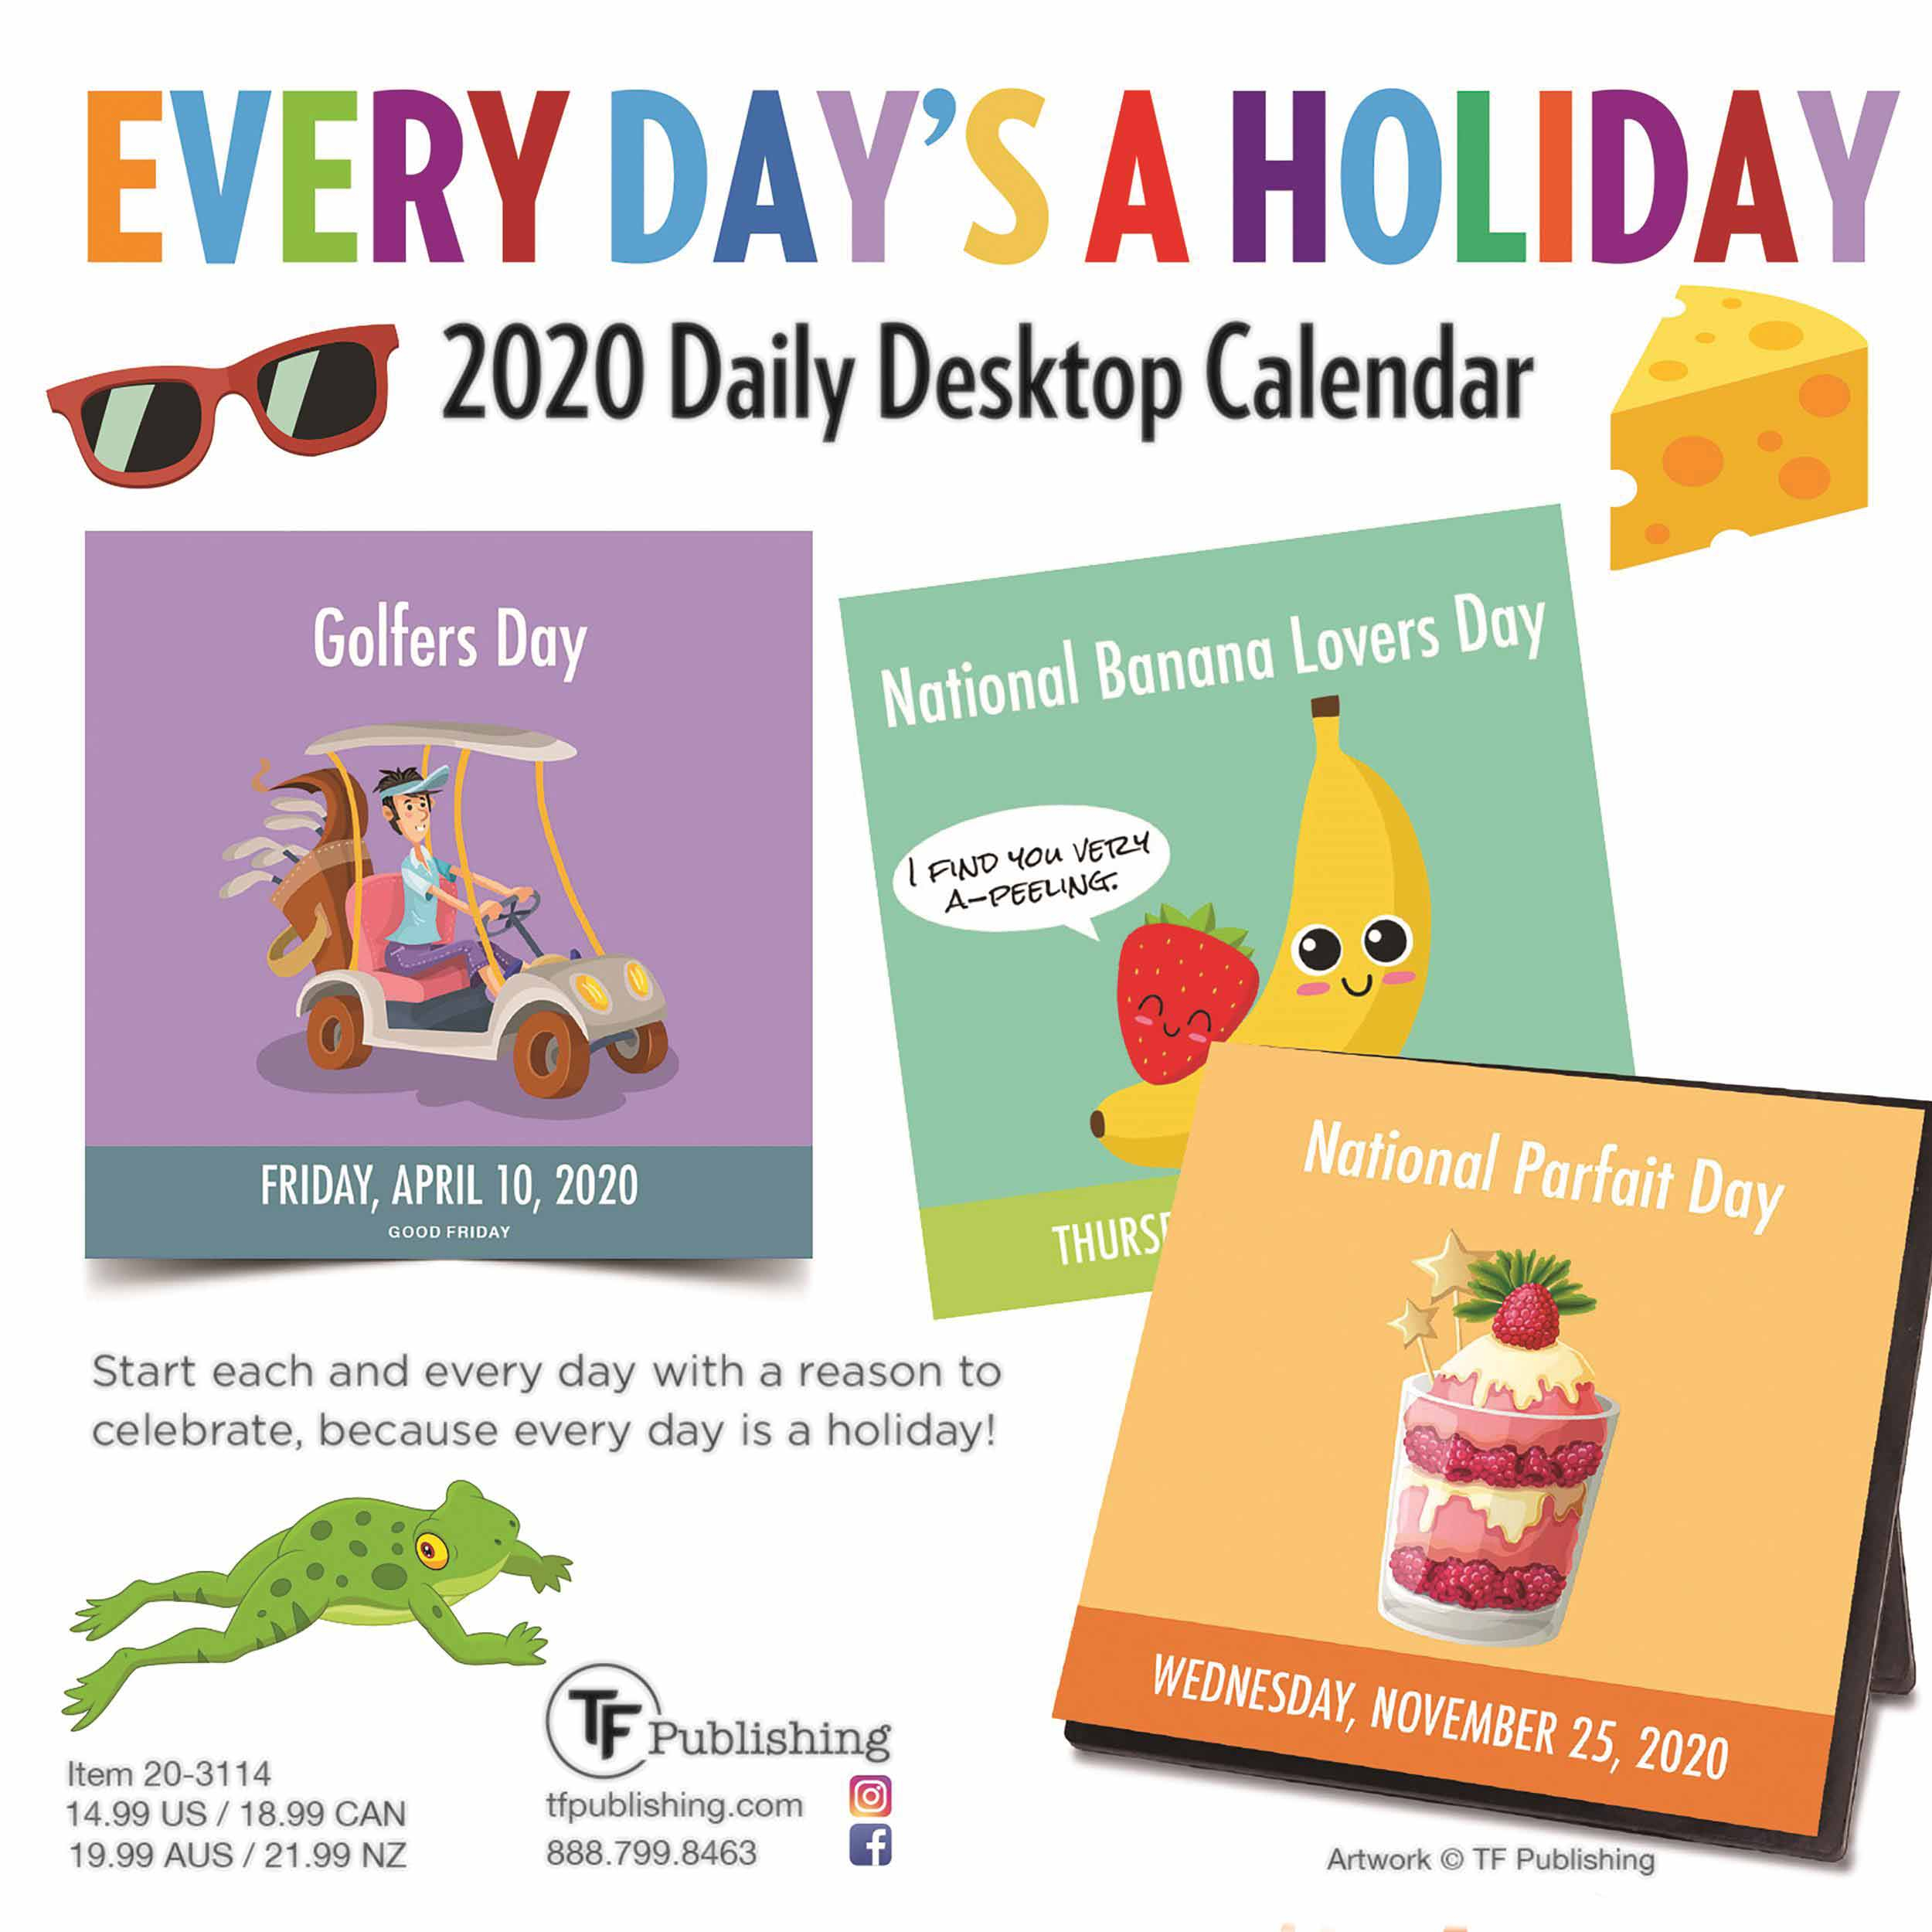 Every Day's A Holiday Desk Calendar 2020 At Calendar Club In Everydays A Holiday Calendar